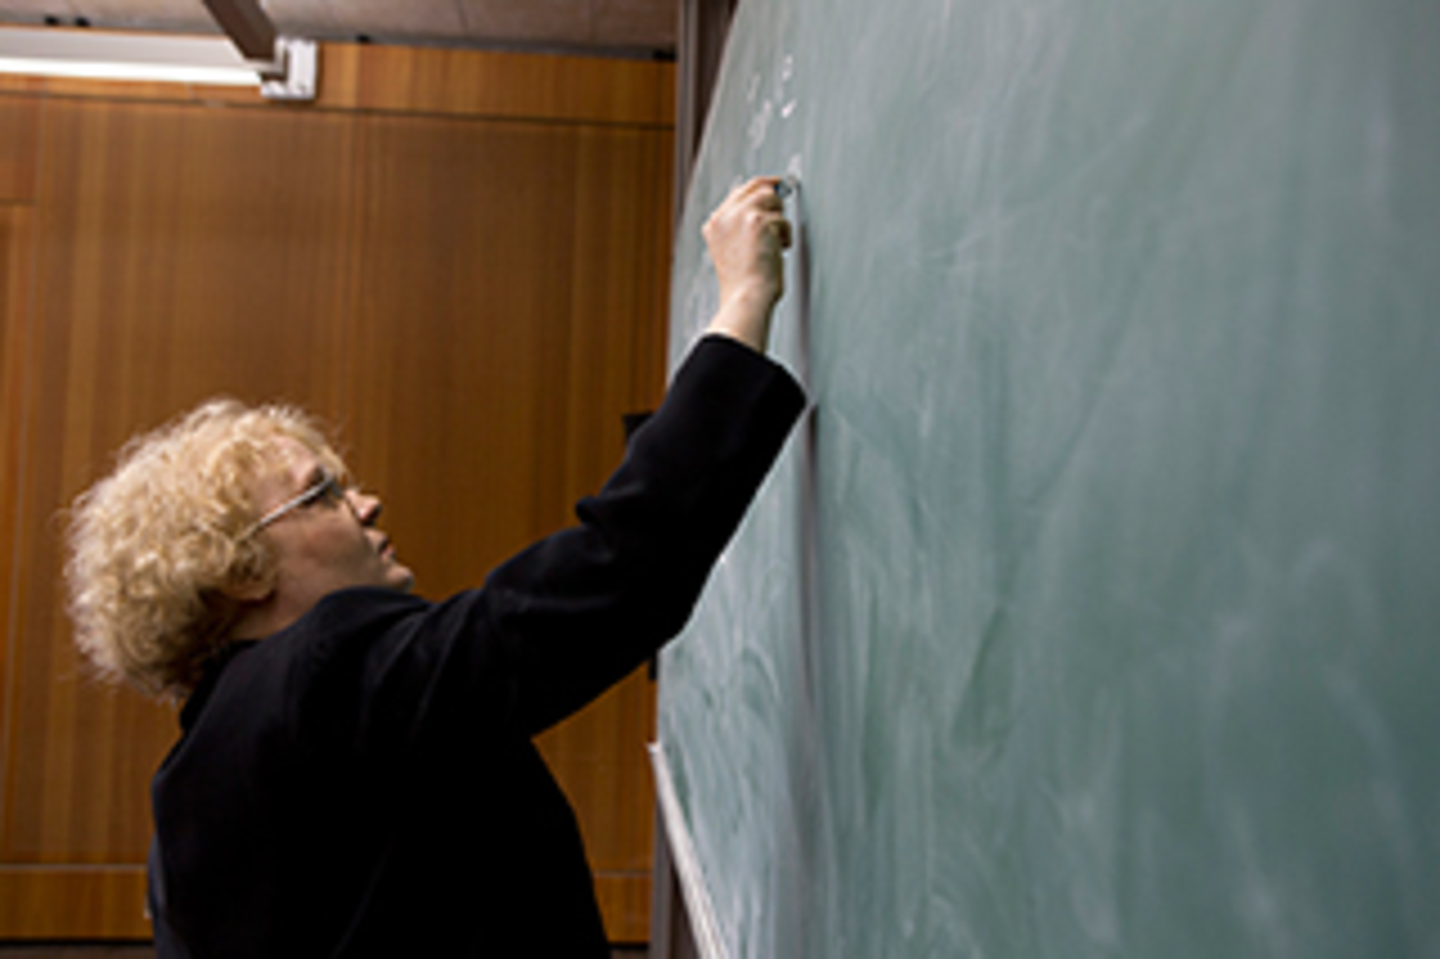 A woman is wiriting on a chalk board.